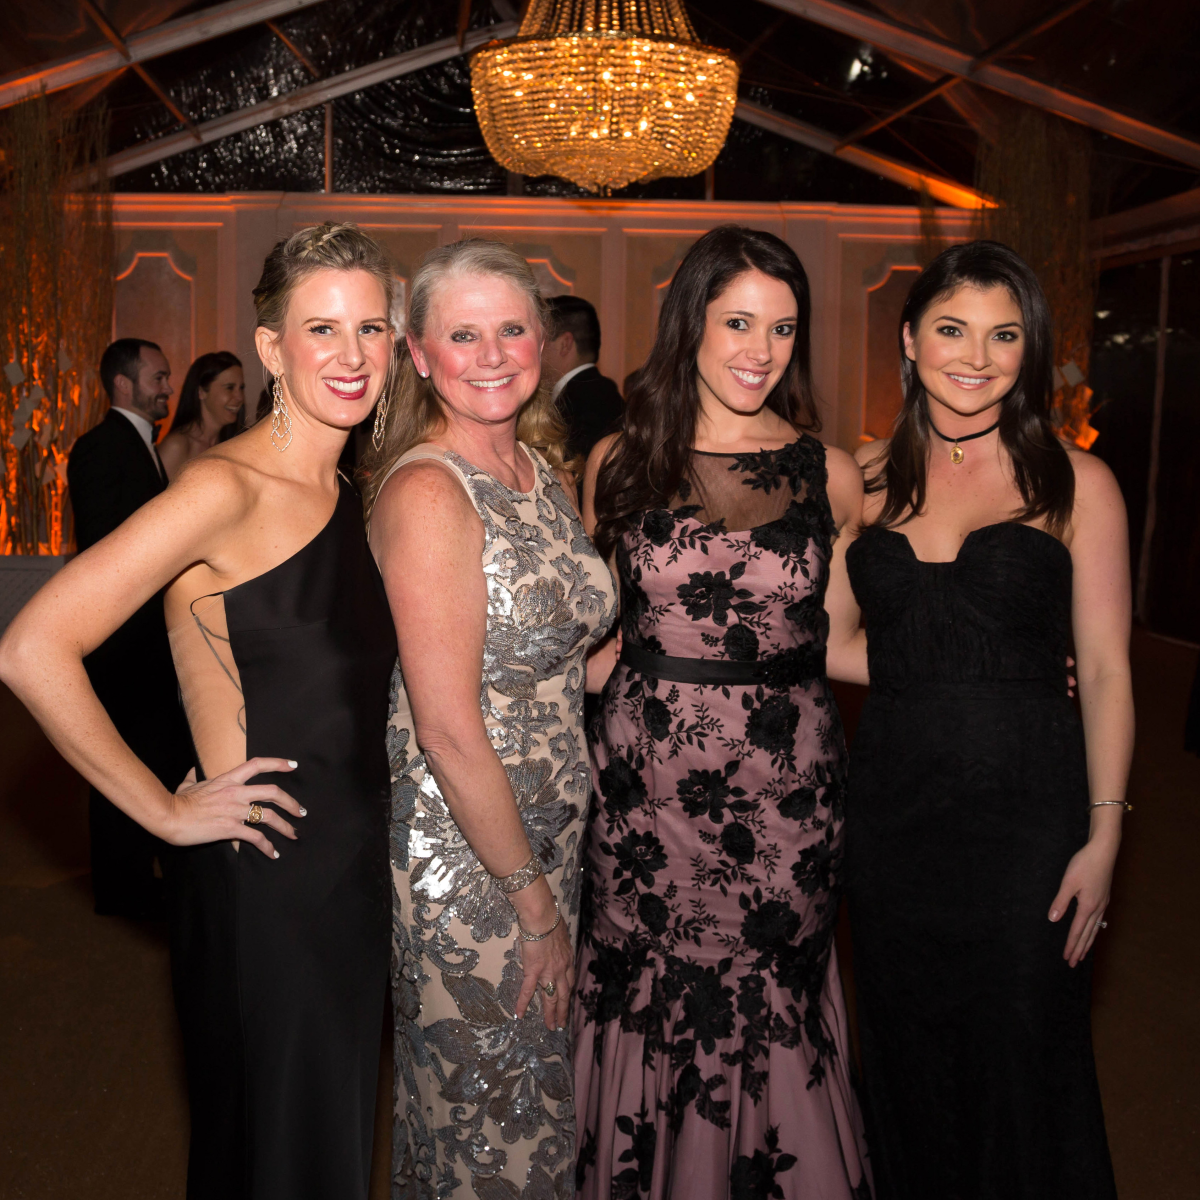 Houston, JLH Charity Ball, February 2018, Jamie Hons, Joni Fichter, Hannah Gelbs, Peyton Wallace